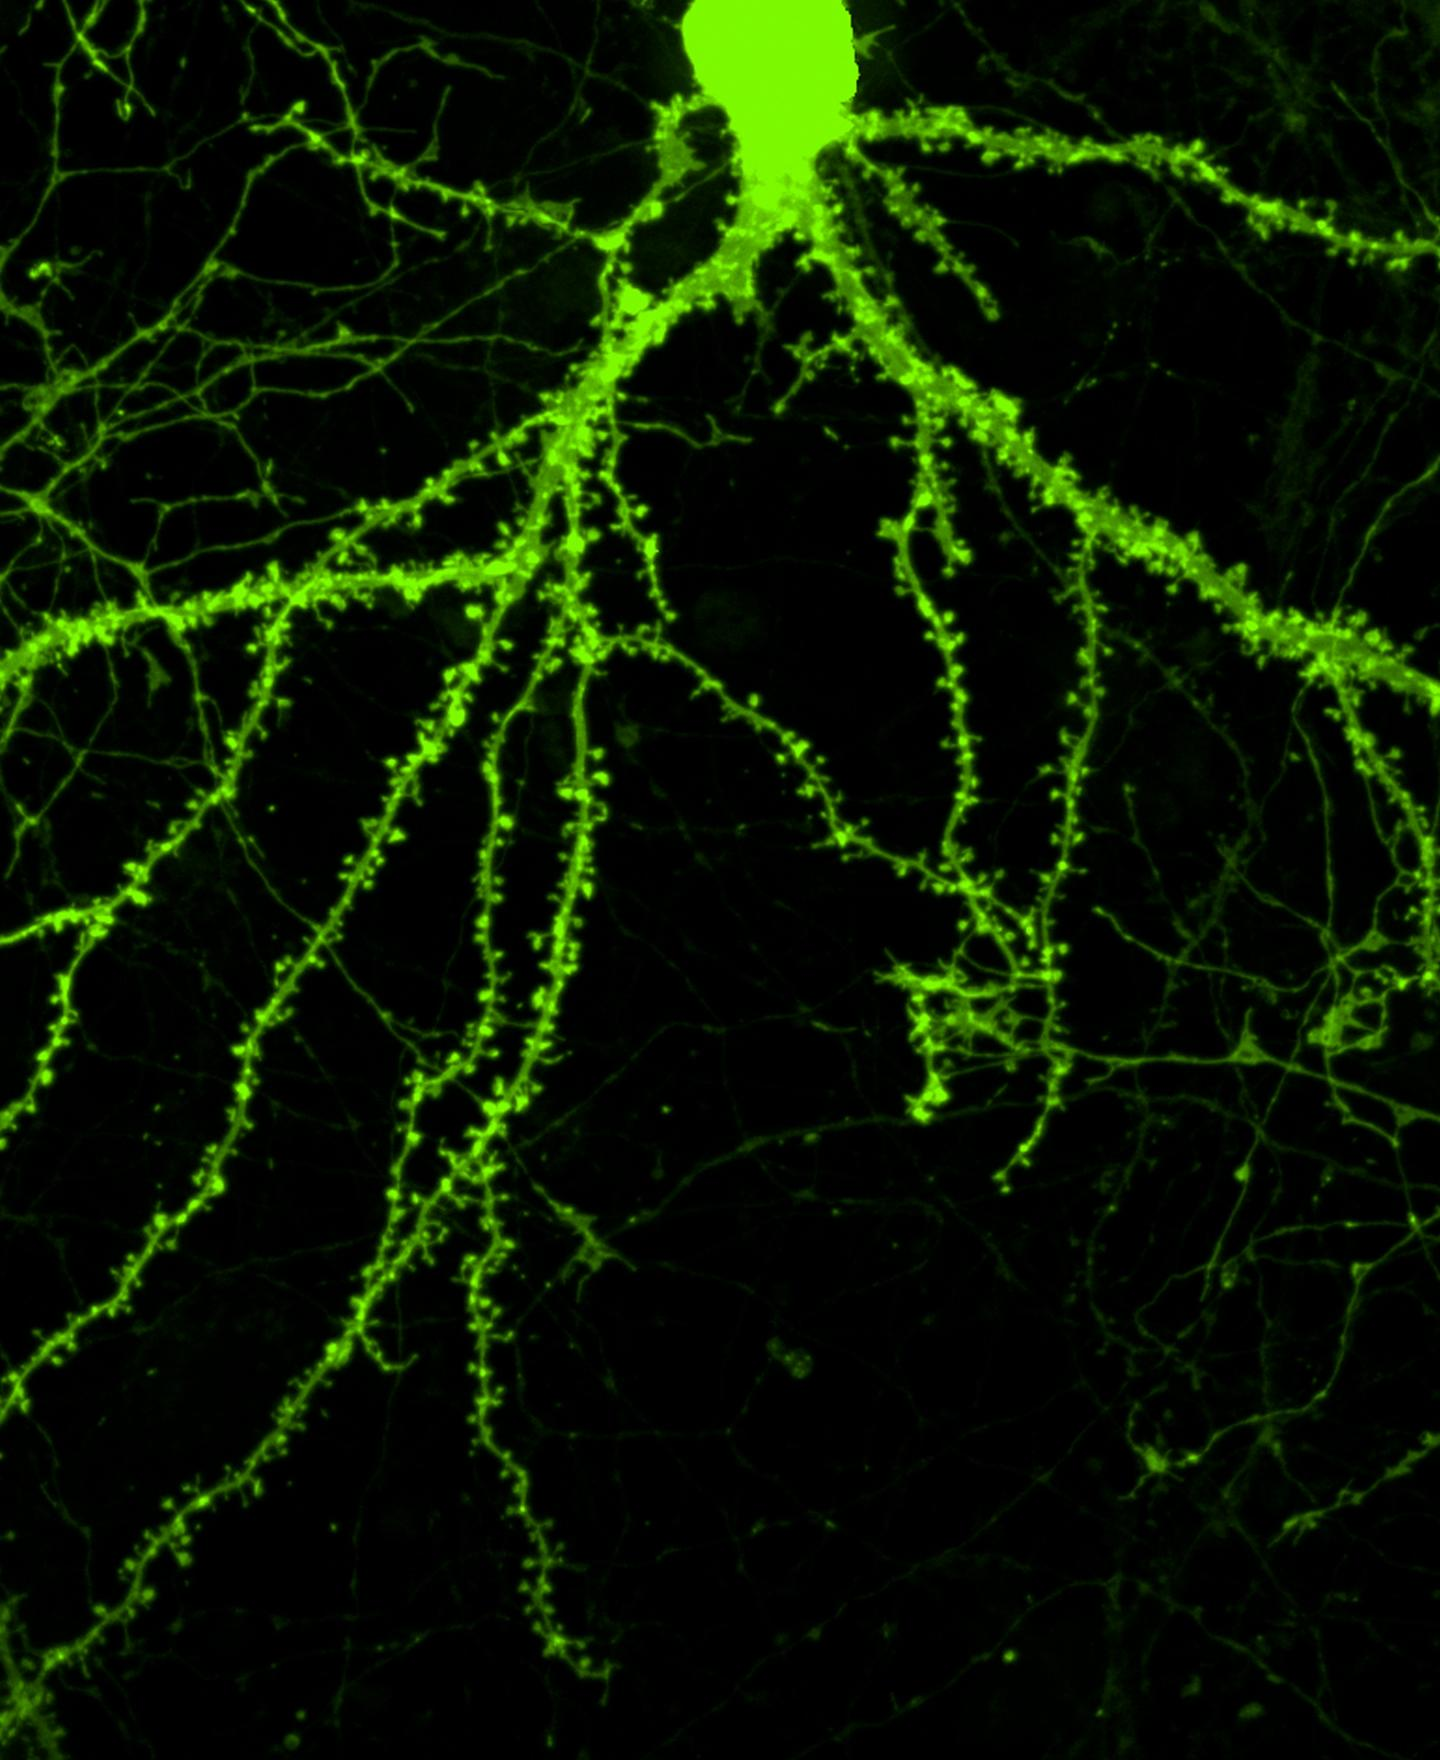 Dendritic Spines Sprout on a Treated Neuron